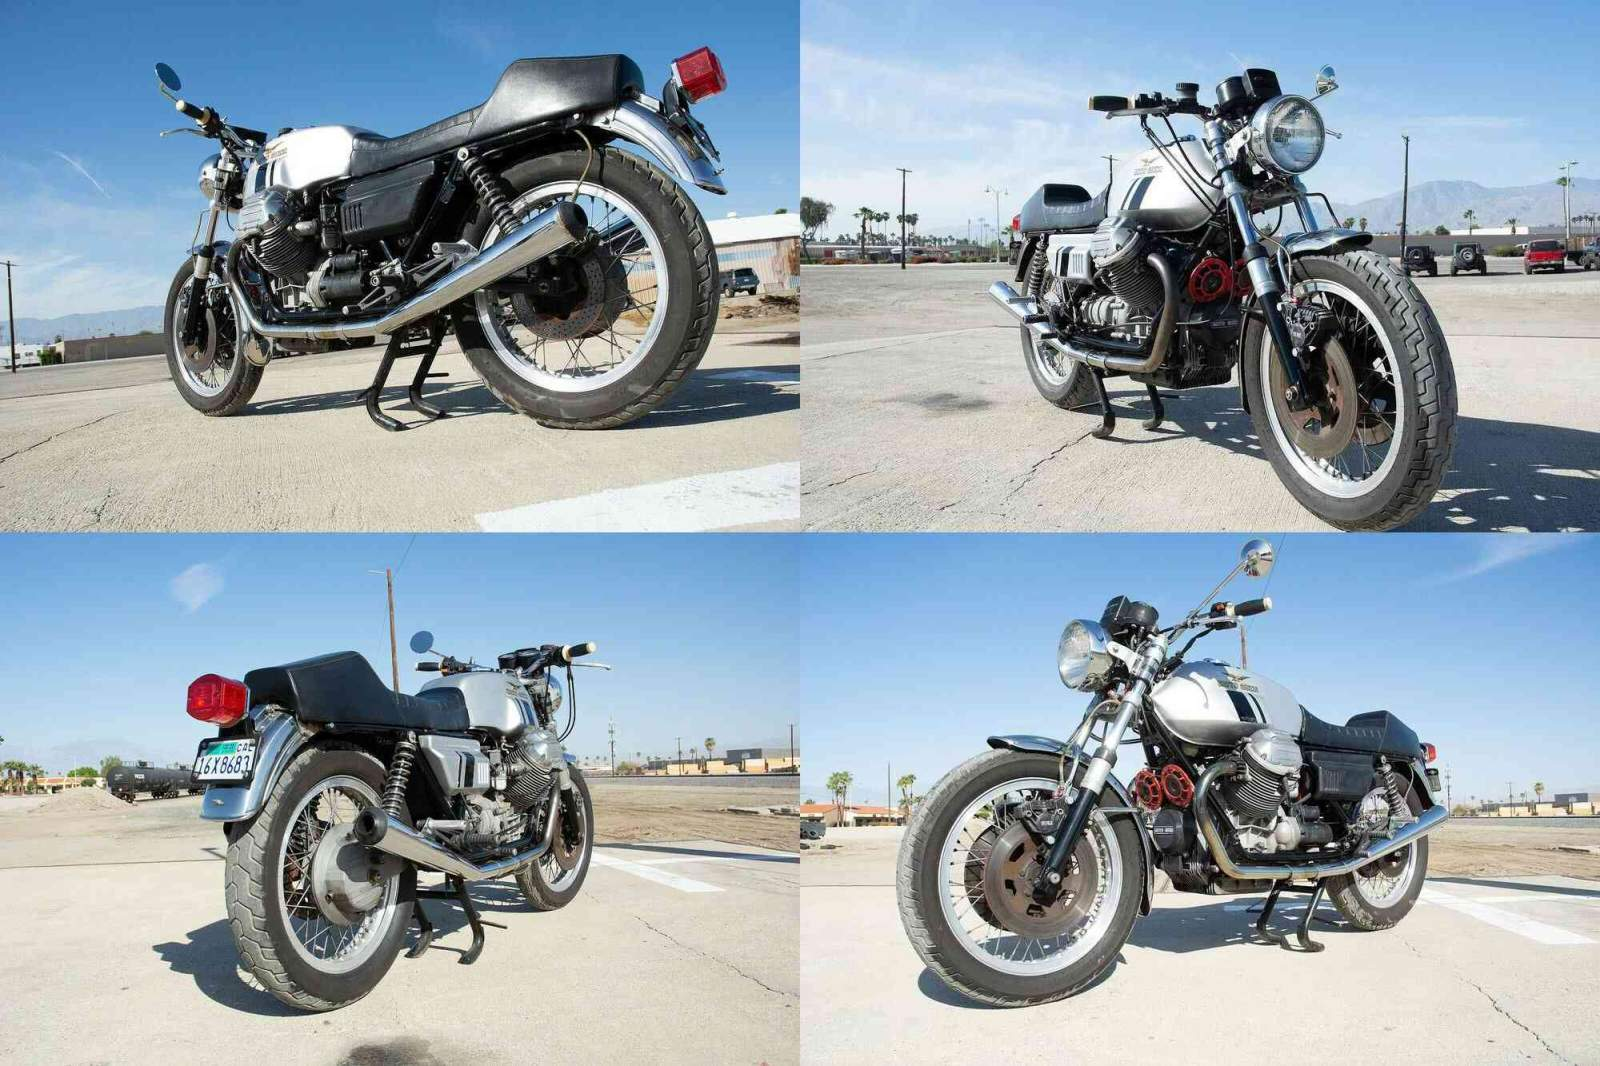 1975 Moto Guzzi Cafe Racer Silver used for sale craigslist